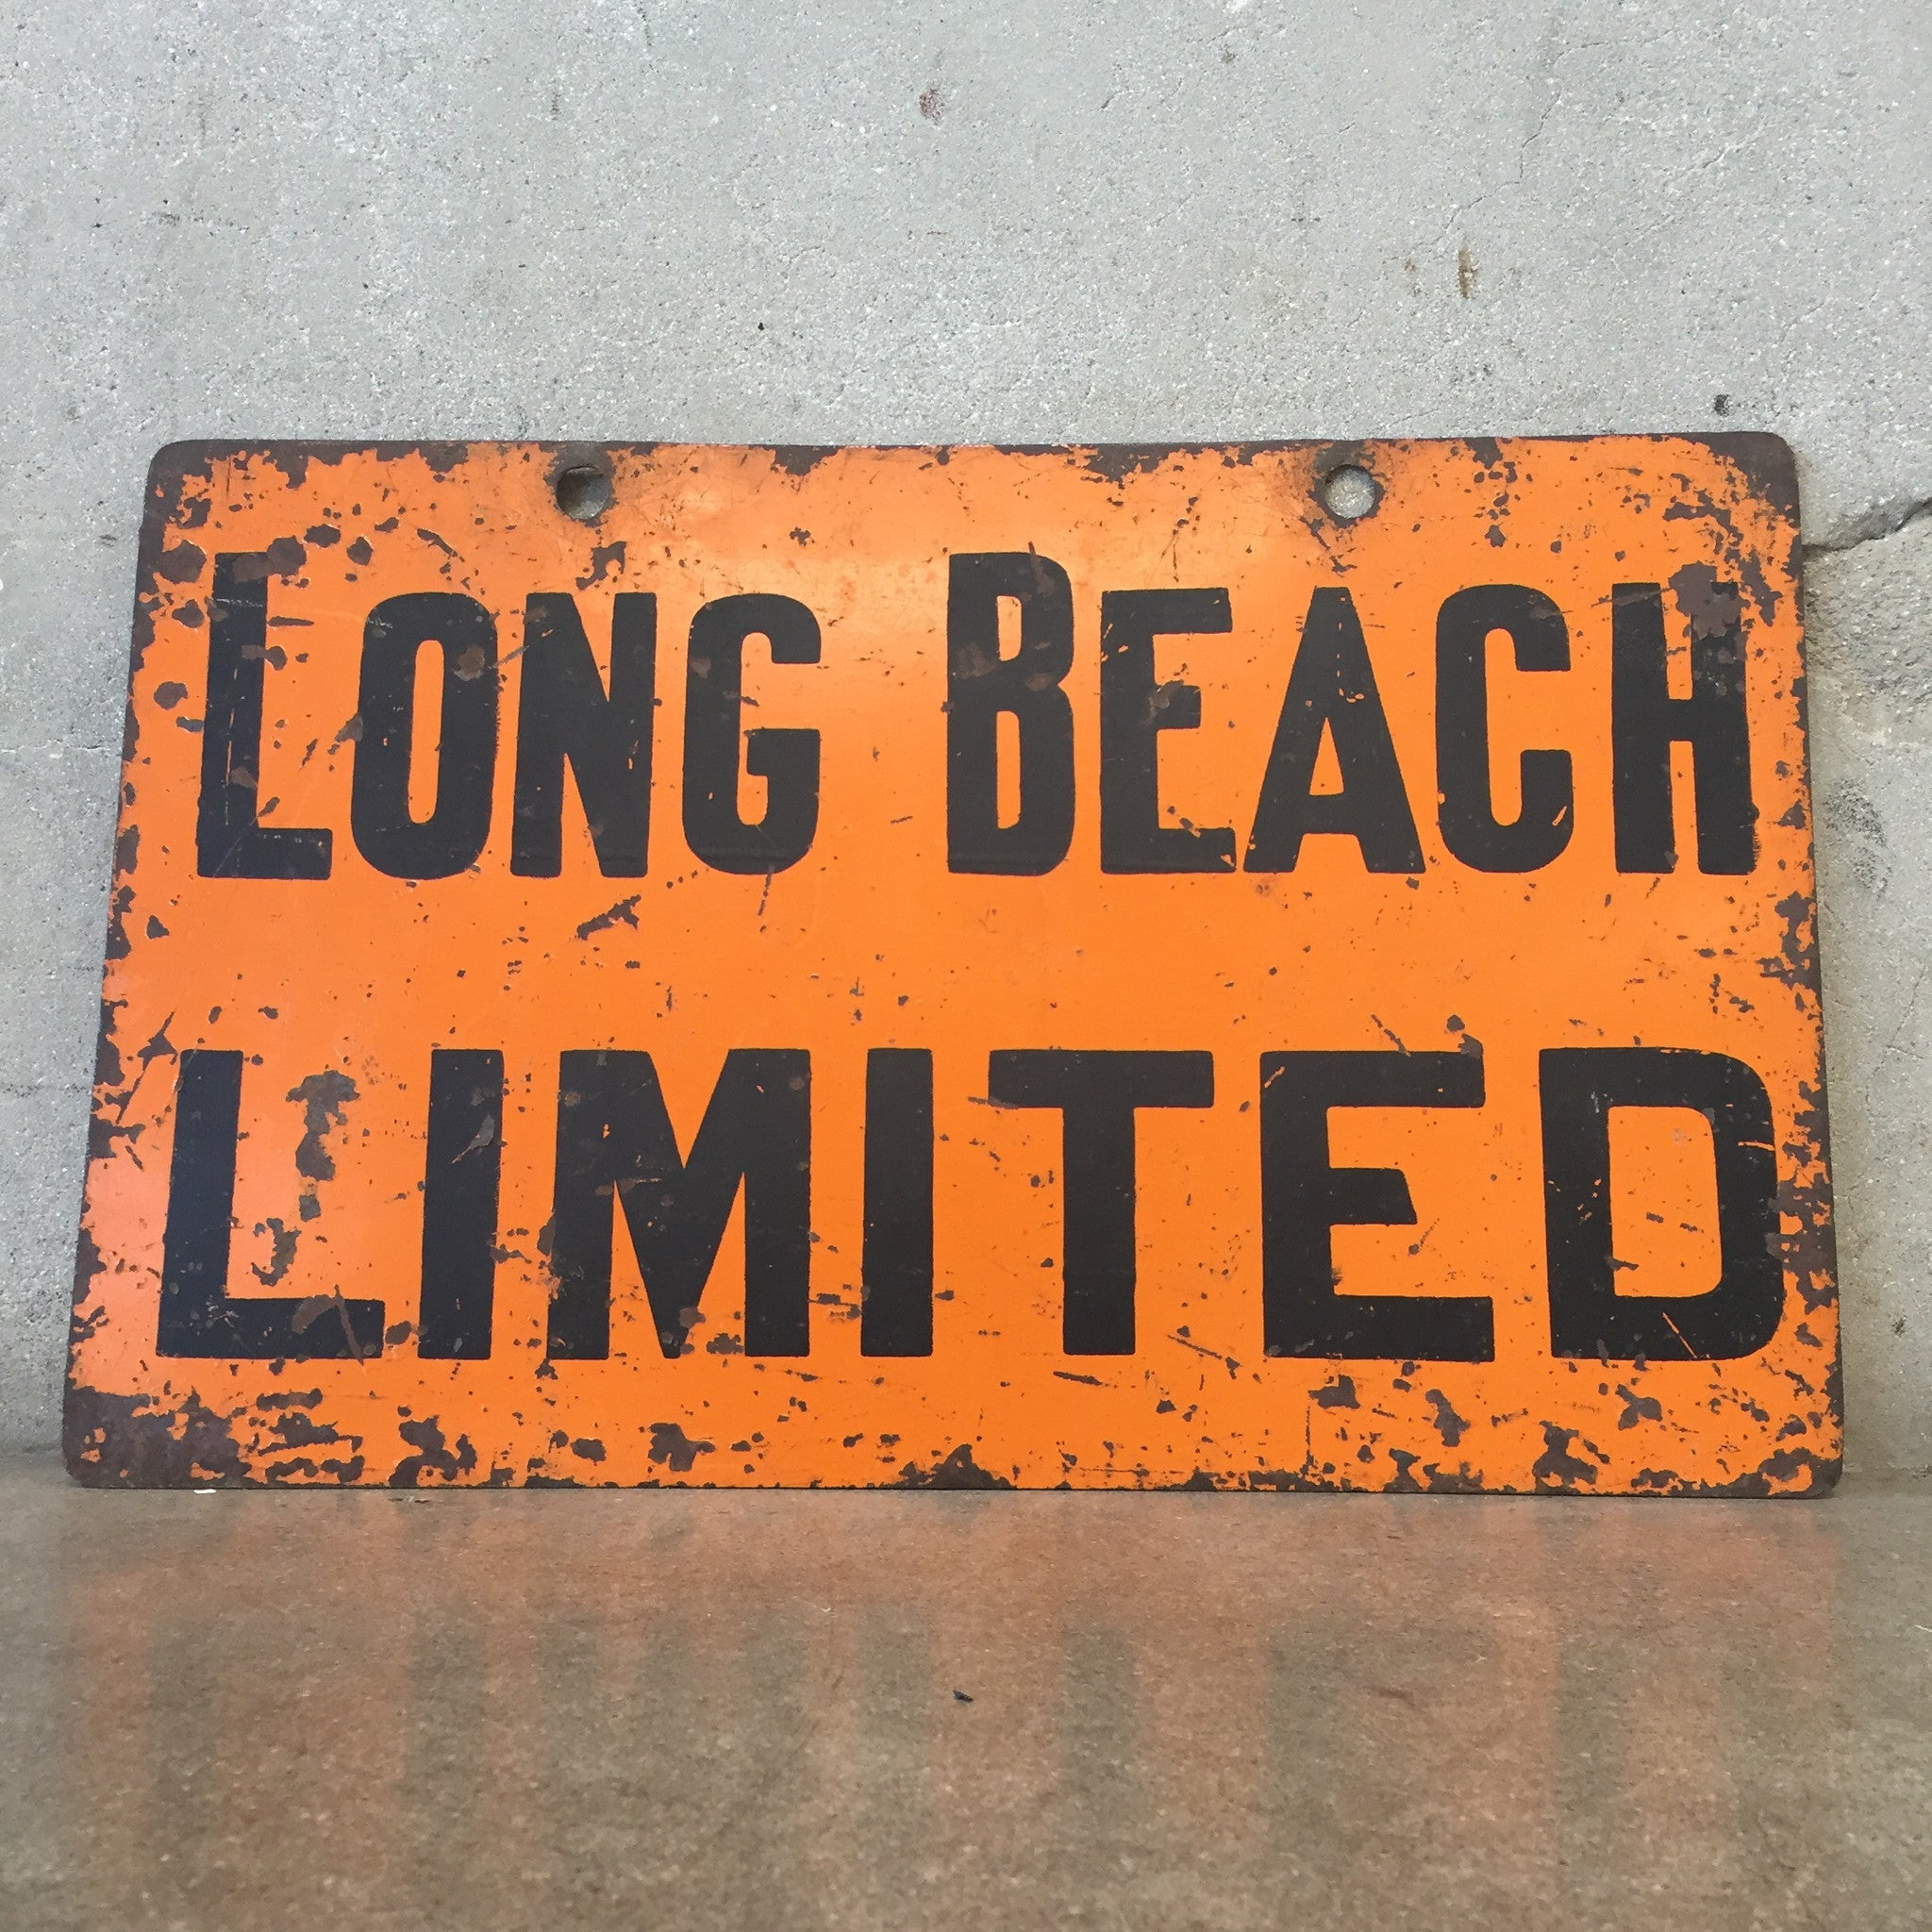 Vintage Long Beach Los Angeles Limited Trolley Sign